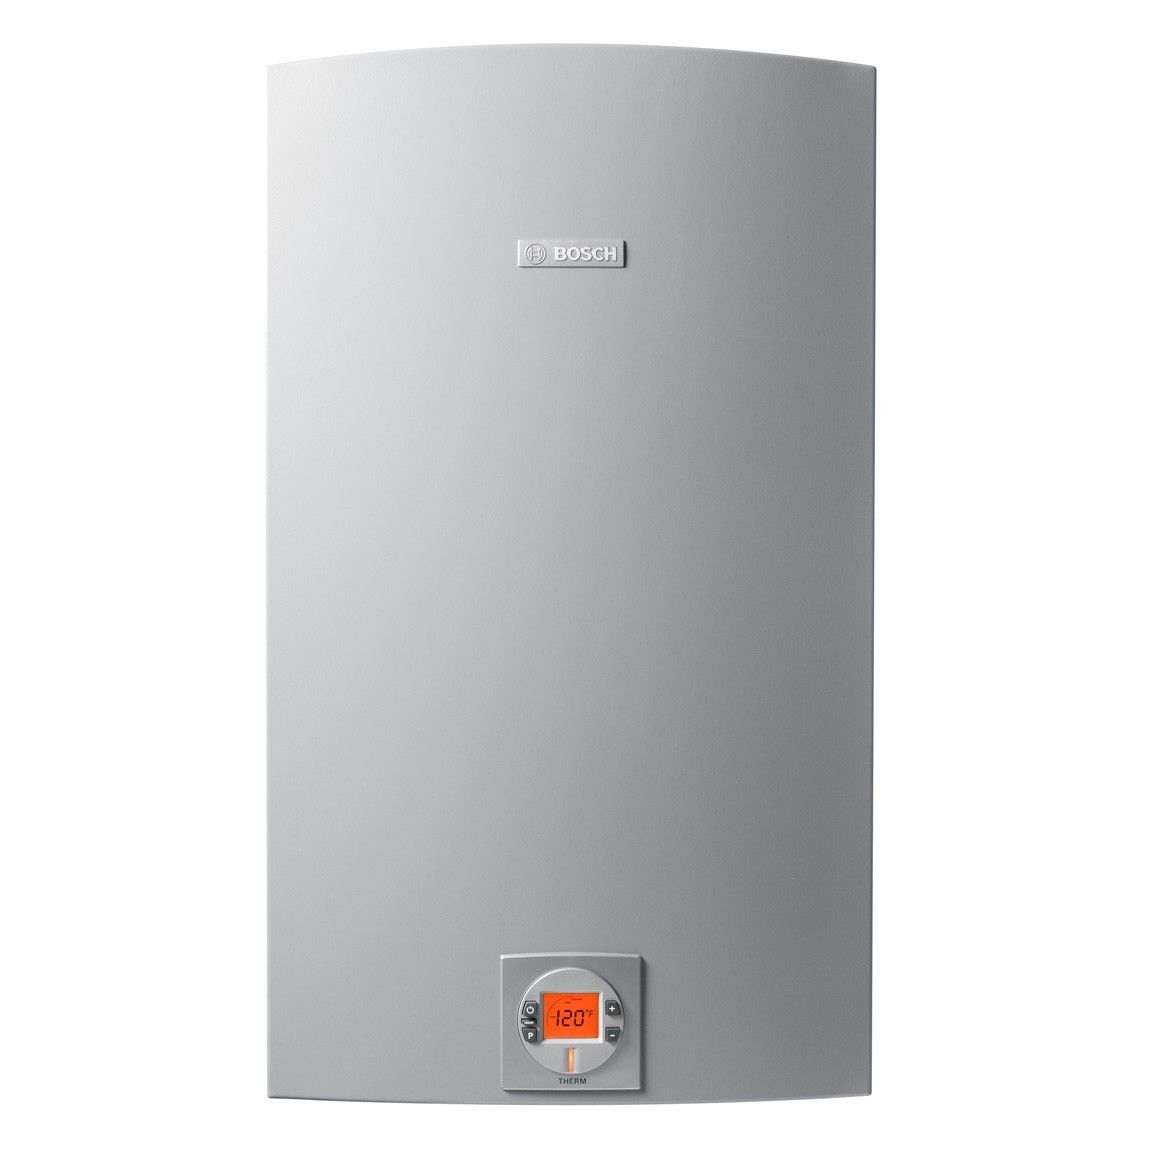 Bosch Therm 830 Es Lp Tankless Water Heater Liquid Propane 175 000 Btu Max Non Condensing Whole House Indoor Or Outdoor 8 3 Gpm